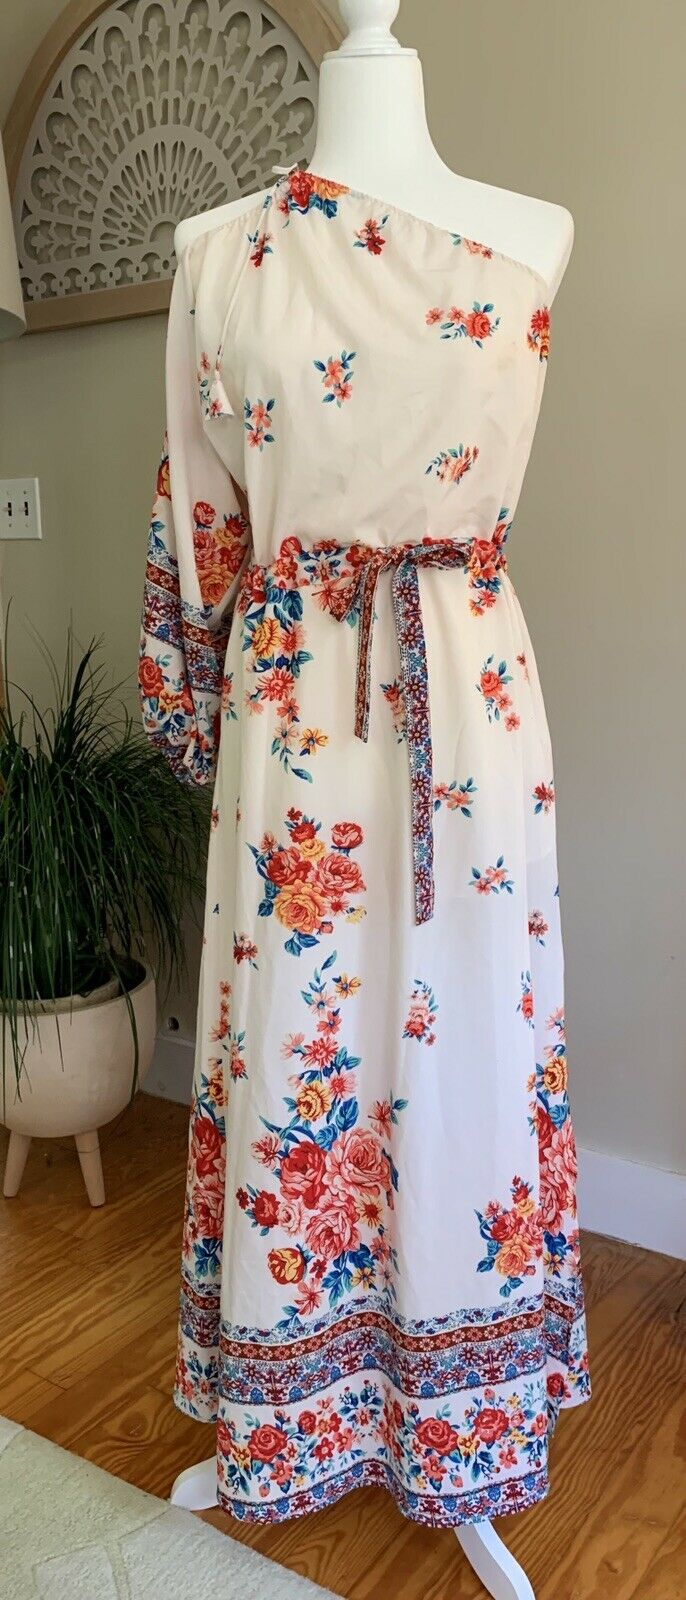 Catalina Dress in Floral MISA Los Angeles Sz S - image 4